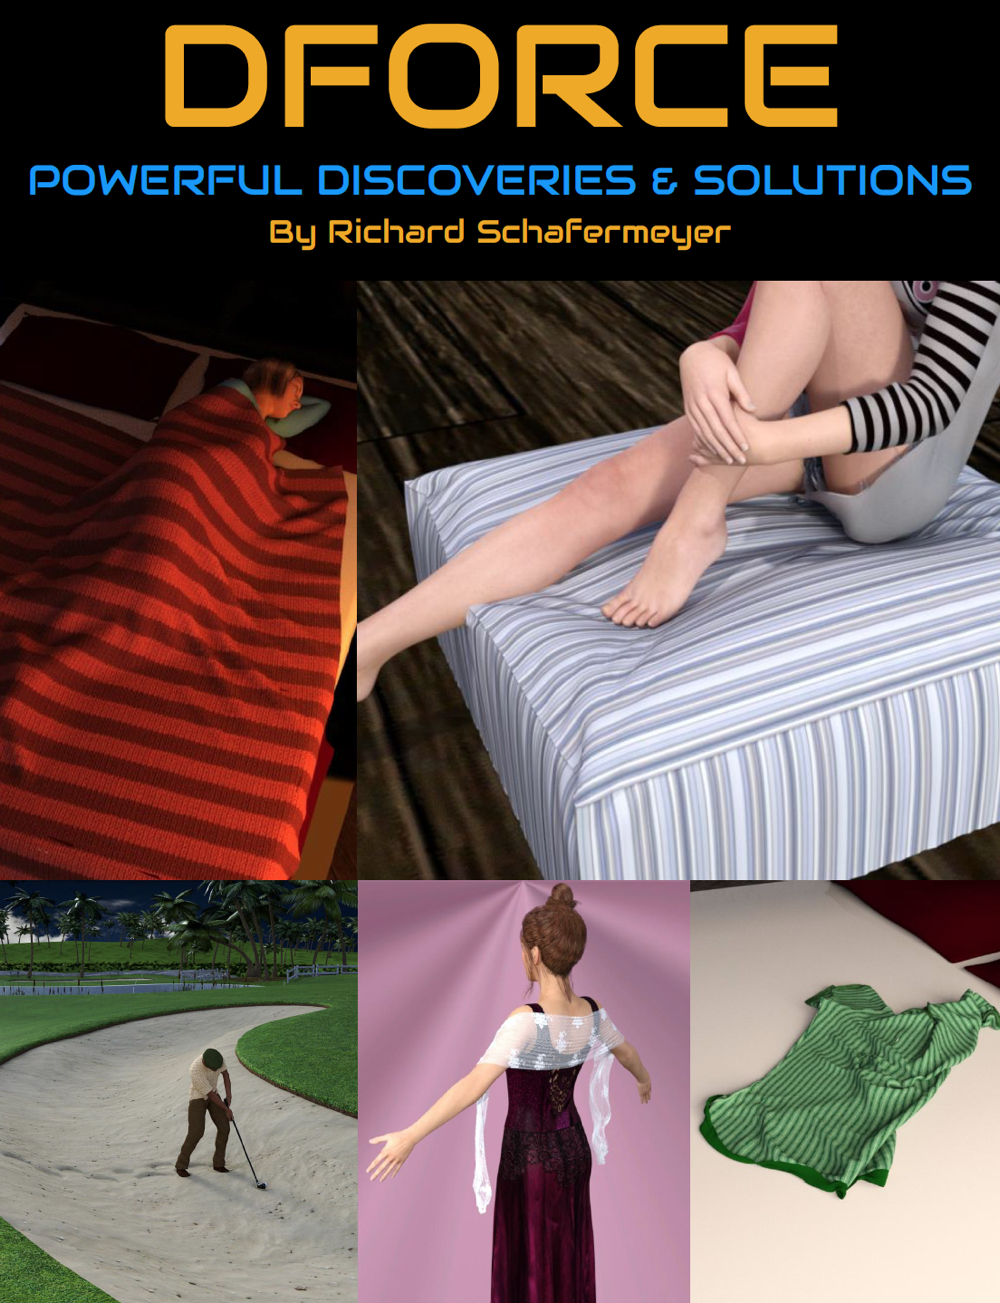 Powerful dForce Discoveries and Solutions by: Digital Art Live, 3D Models by Daz 3D